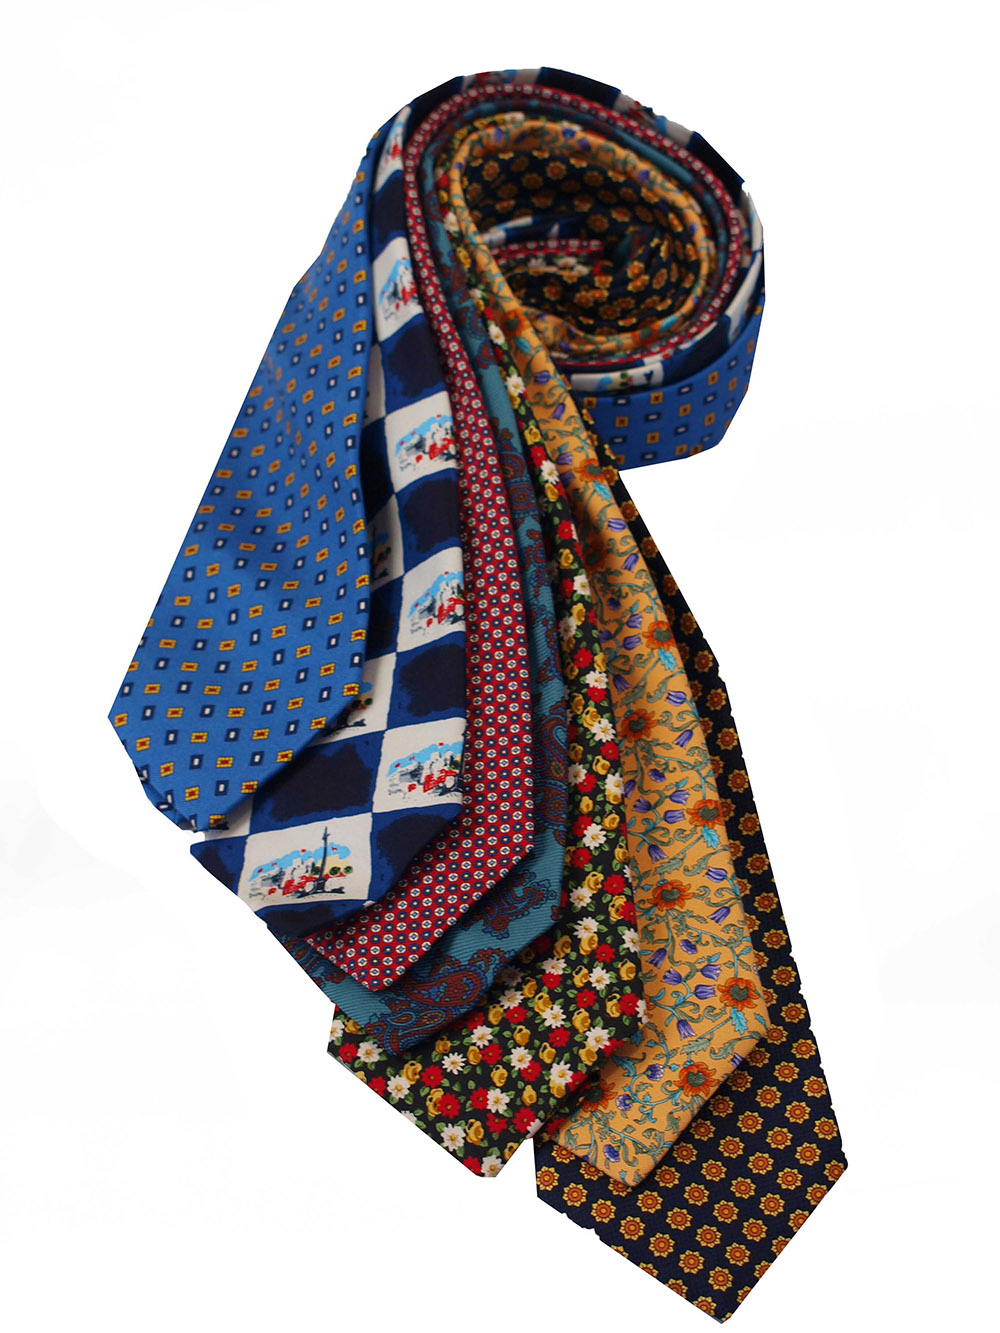 Cavenagh of London 7Piece 100% Pure Silk Ties Made in UK (115D)RRP£139.99